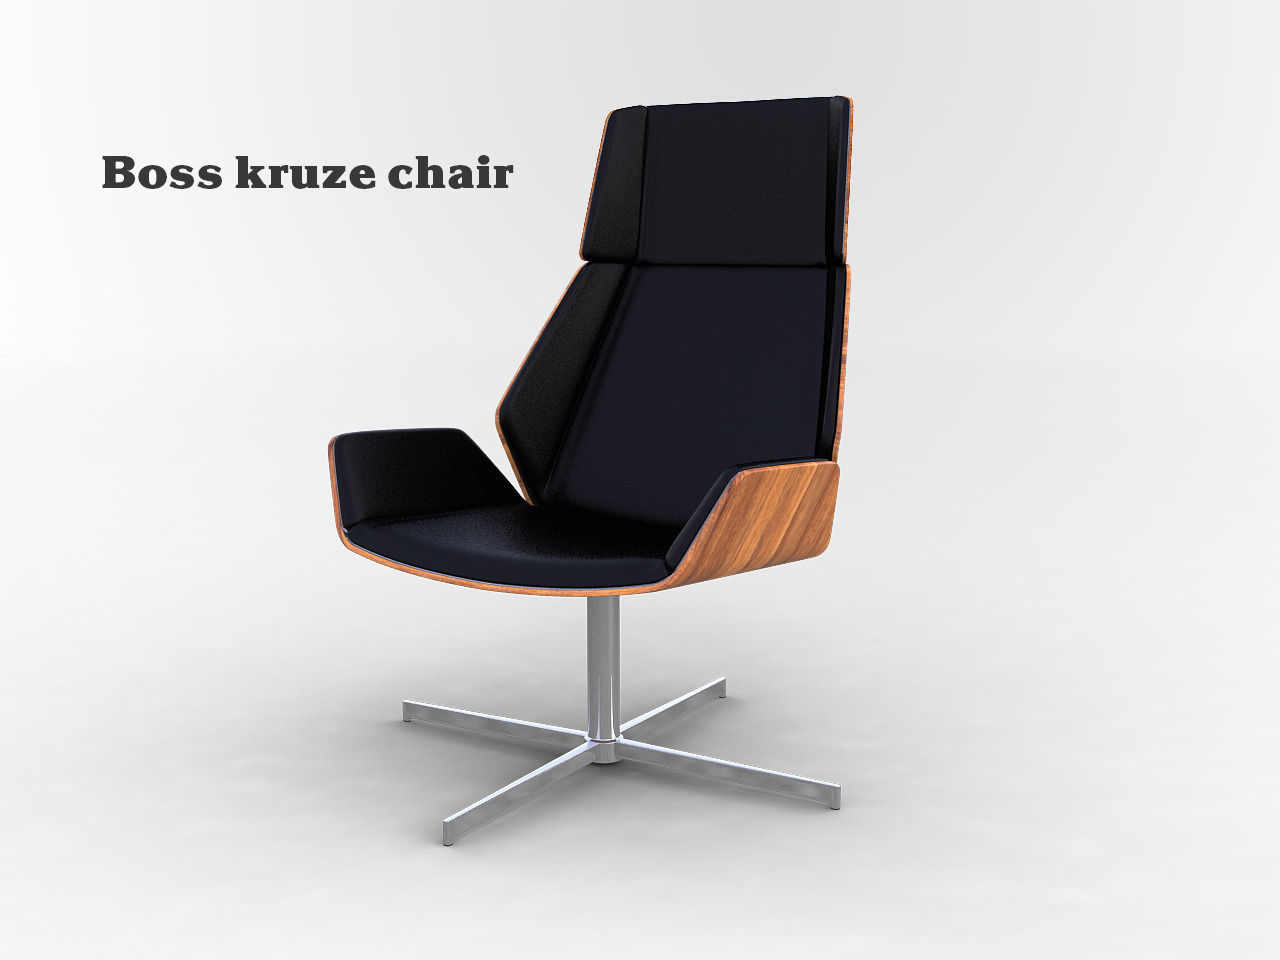 ... boss kruze chair 3d model max obj 2 ... : kruze chair - Cheerinfomania.Com